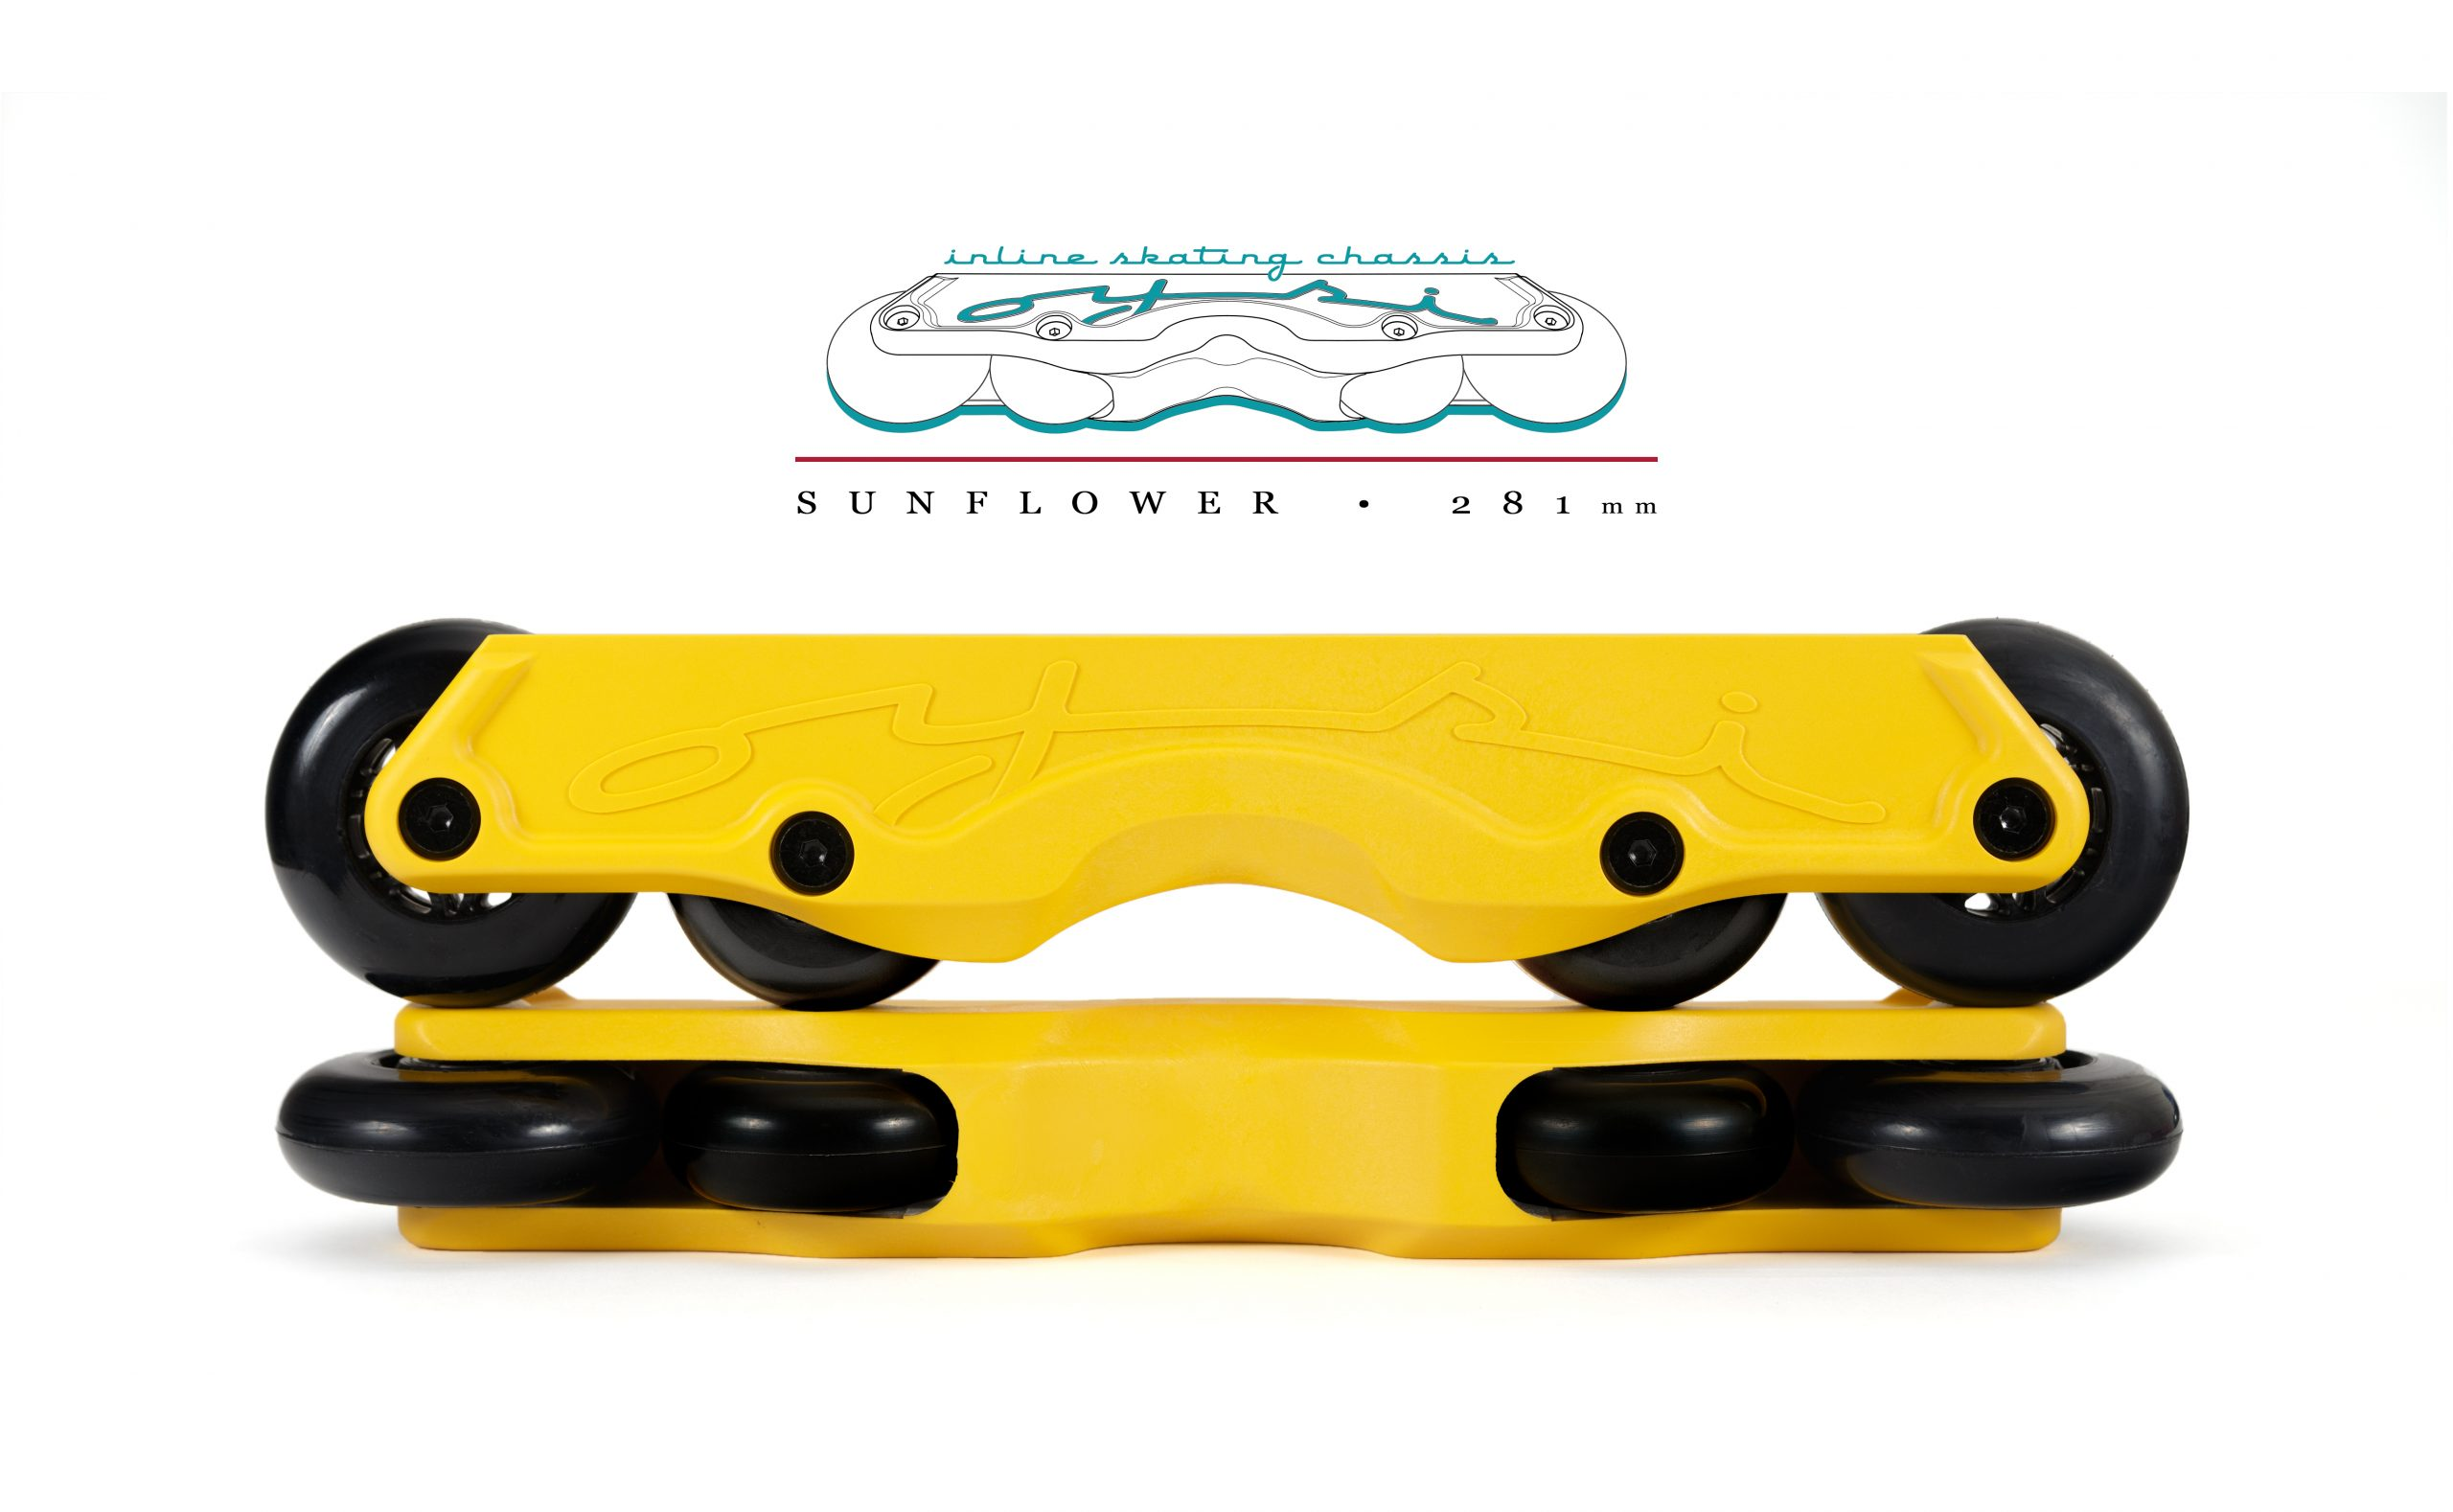 OISC Oysi Inline Skating Chassis 72mm  Sunflower